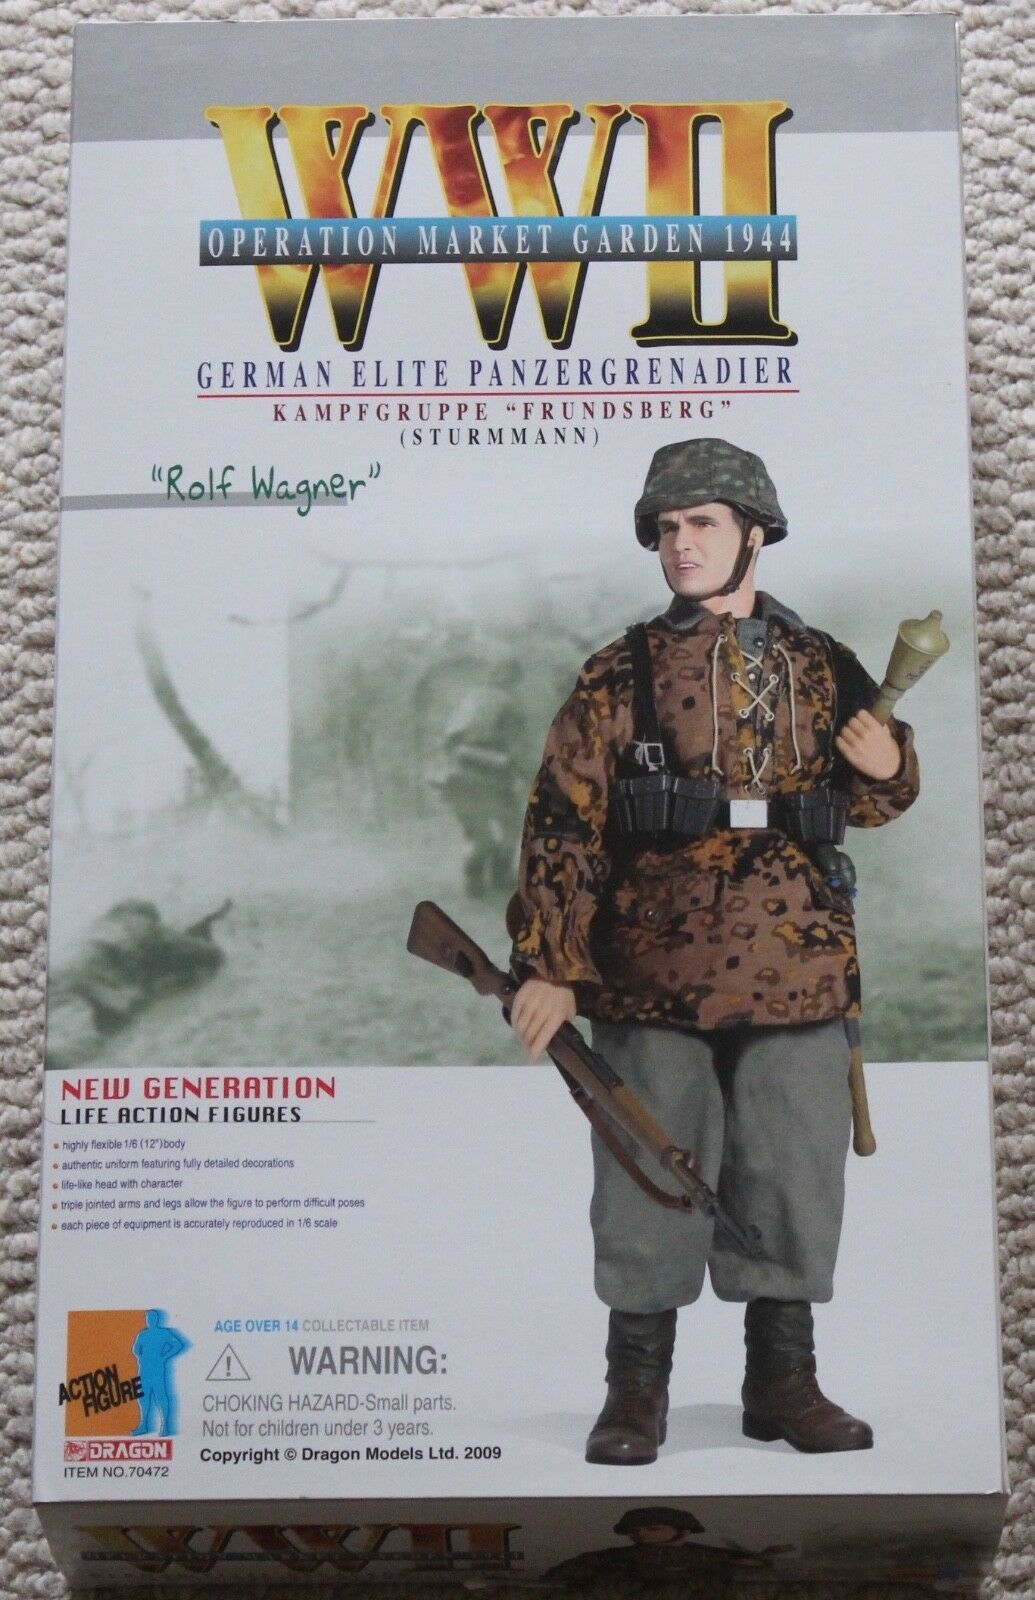 Dragon action figure ww11 german rolf wagner 1 6 12'' 70472 did cyber hot toy